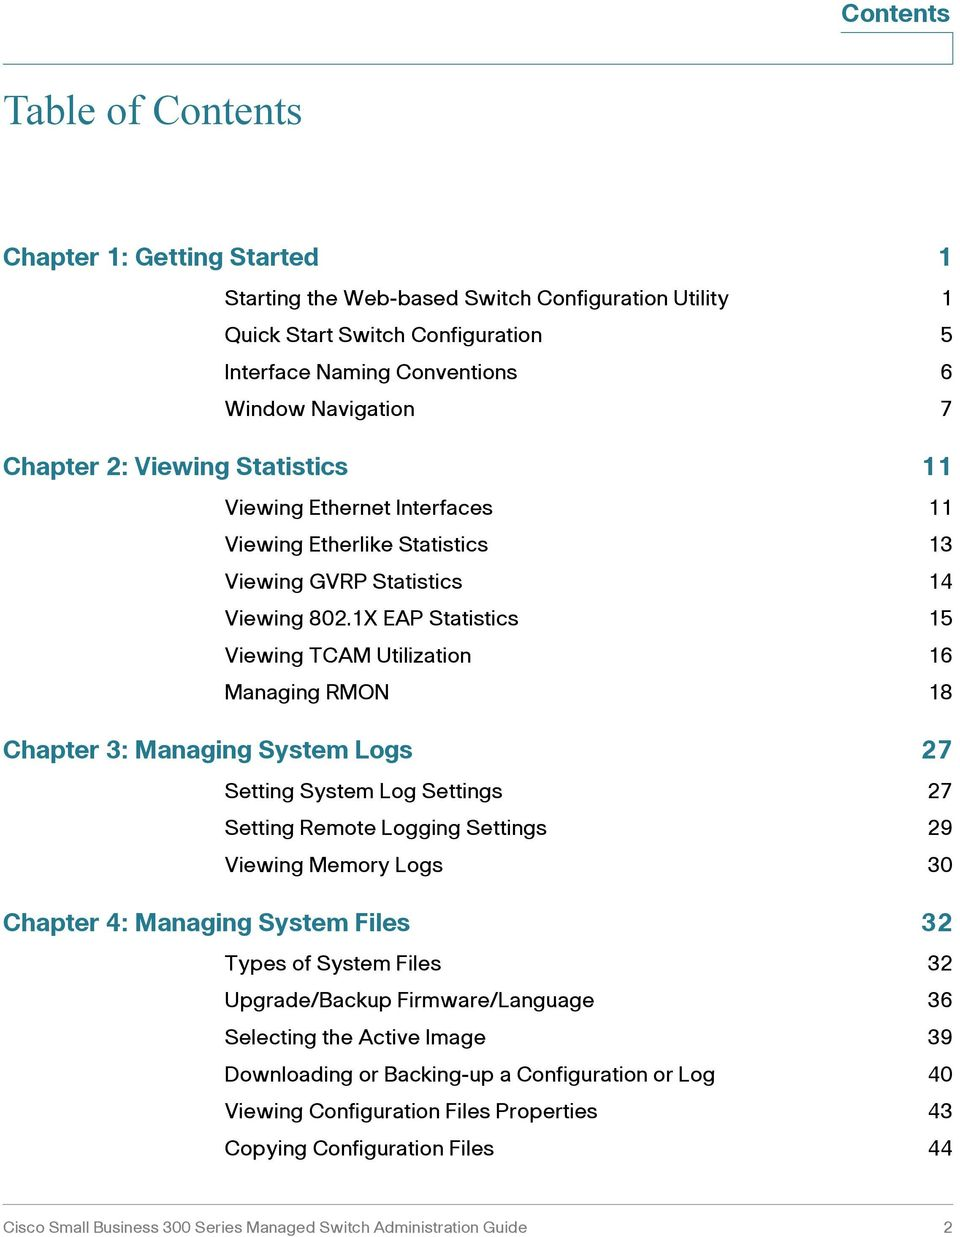 1X EAP Statistics 15 Viewing TCAM Utilization 16 Managing RMON 18 Chapter 3: Managing System Logs 27 Setting System Log Settings 27 Setting Remote Logging Settings 29 Viewing Memory Logs 30 Chapter